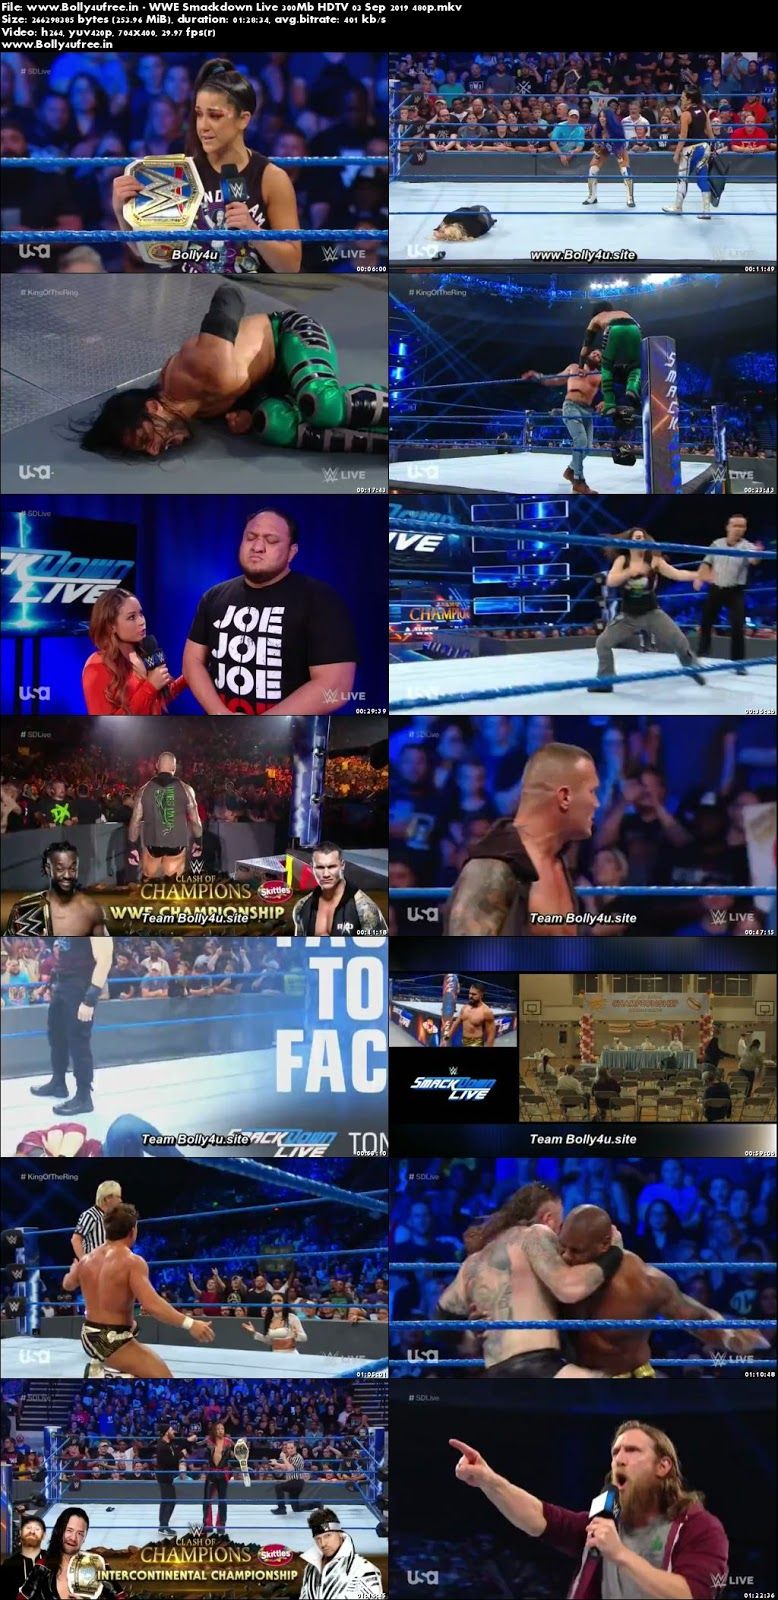 WWE Smackdown Live 300Mb HDTV 03 Sep 2019 480p